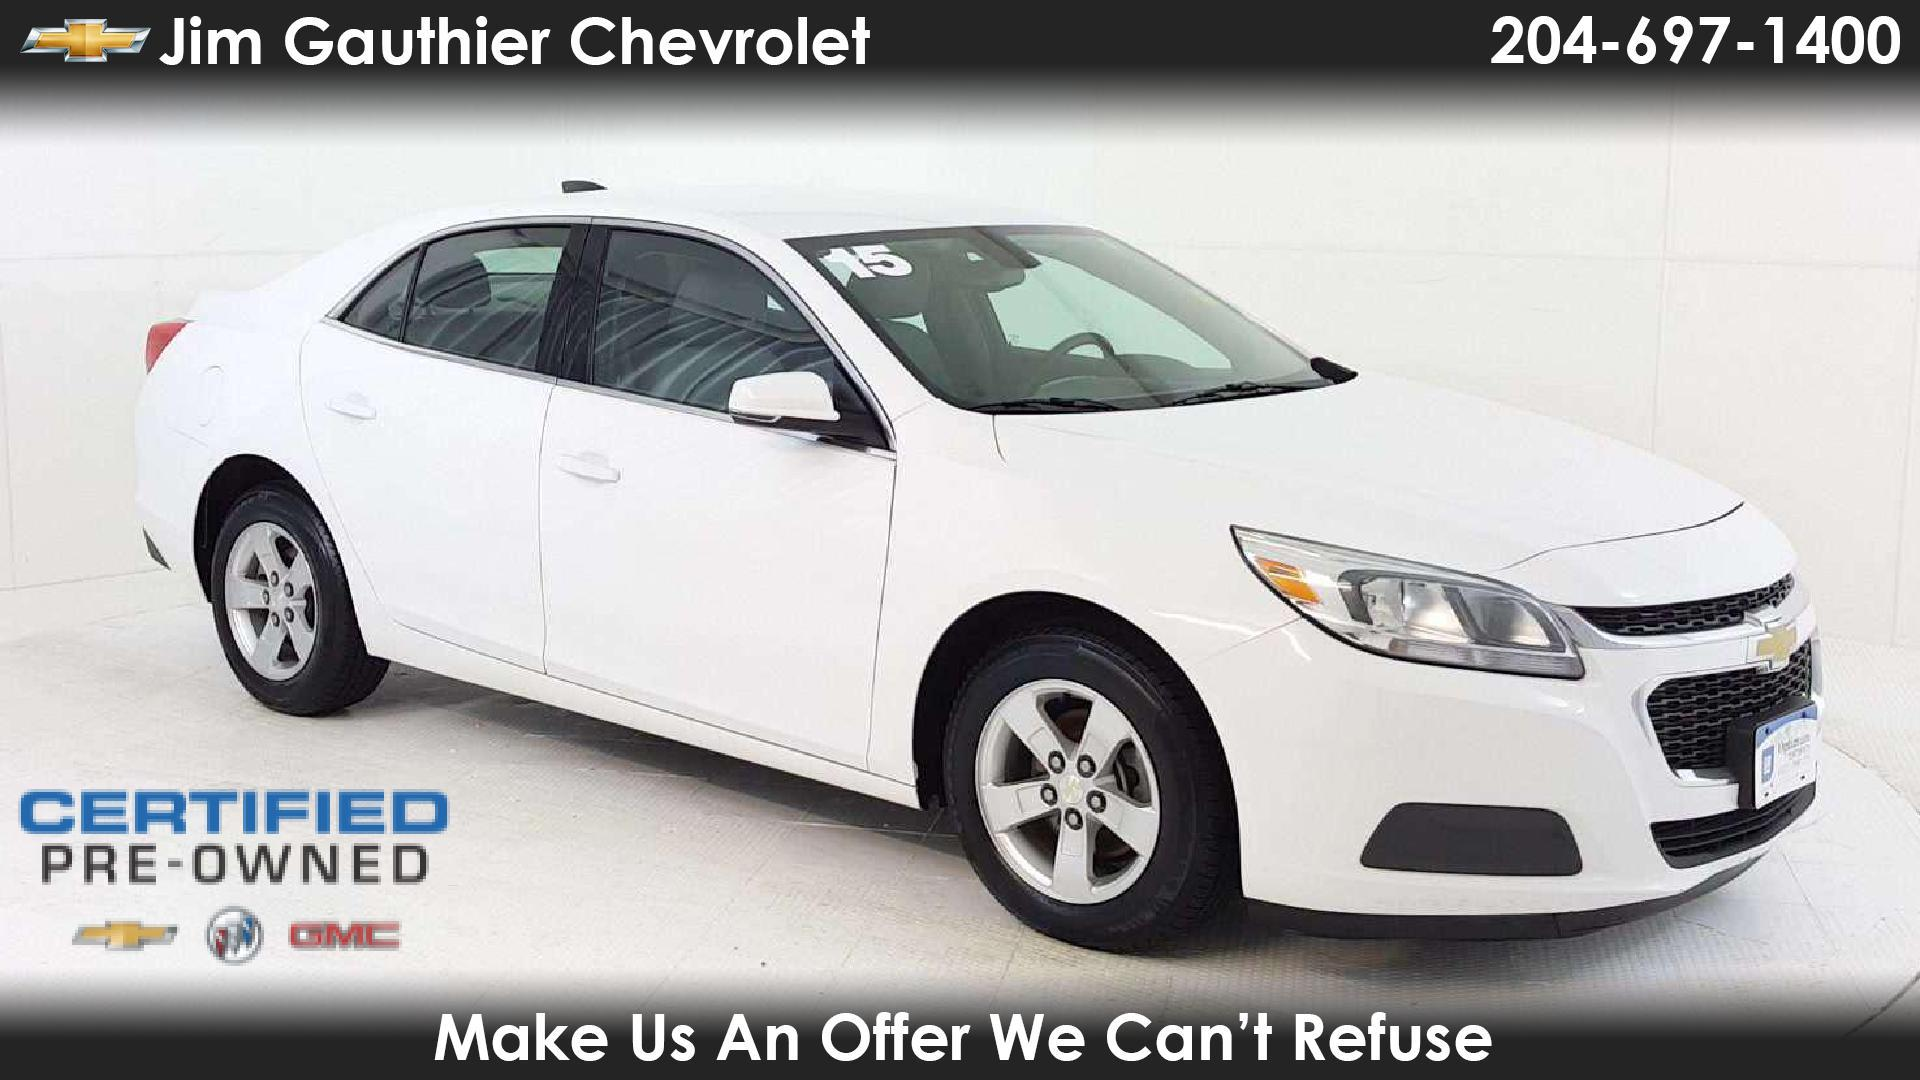 Used Cars For Sale In Winnipeg >> Jim Gauthier Chevrolet In Winnipeg Used Chevrolet Malibu